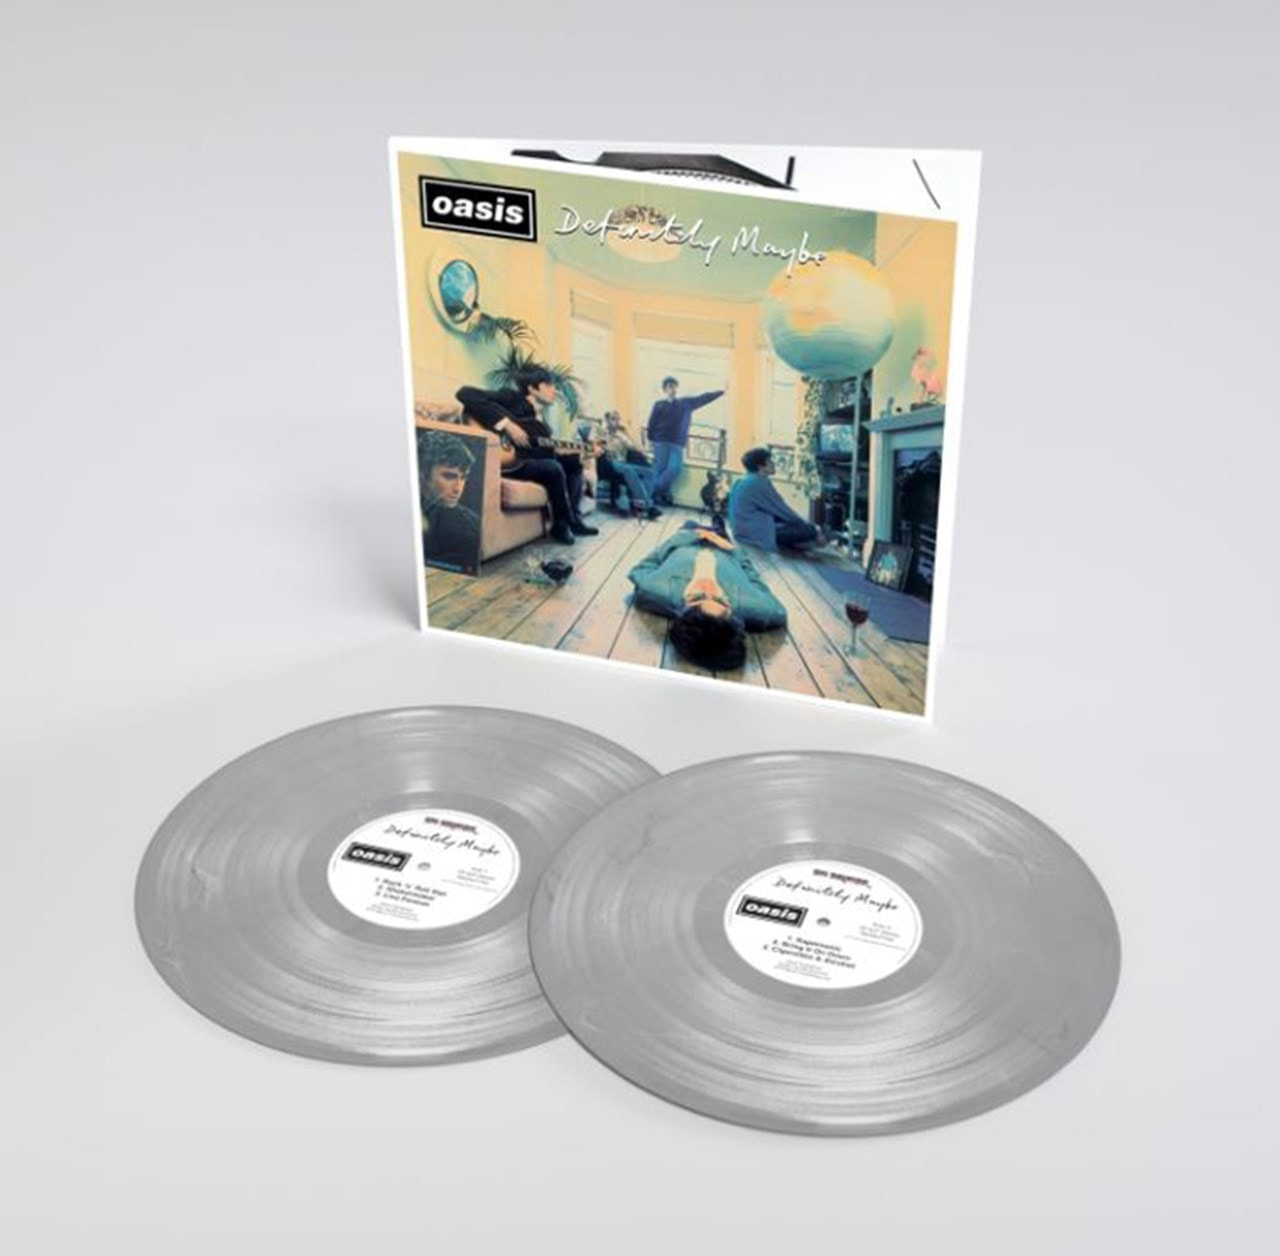 Oasis - Definitely Maybe: 25th Anniversary Limited Edition Silver Vinyl